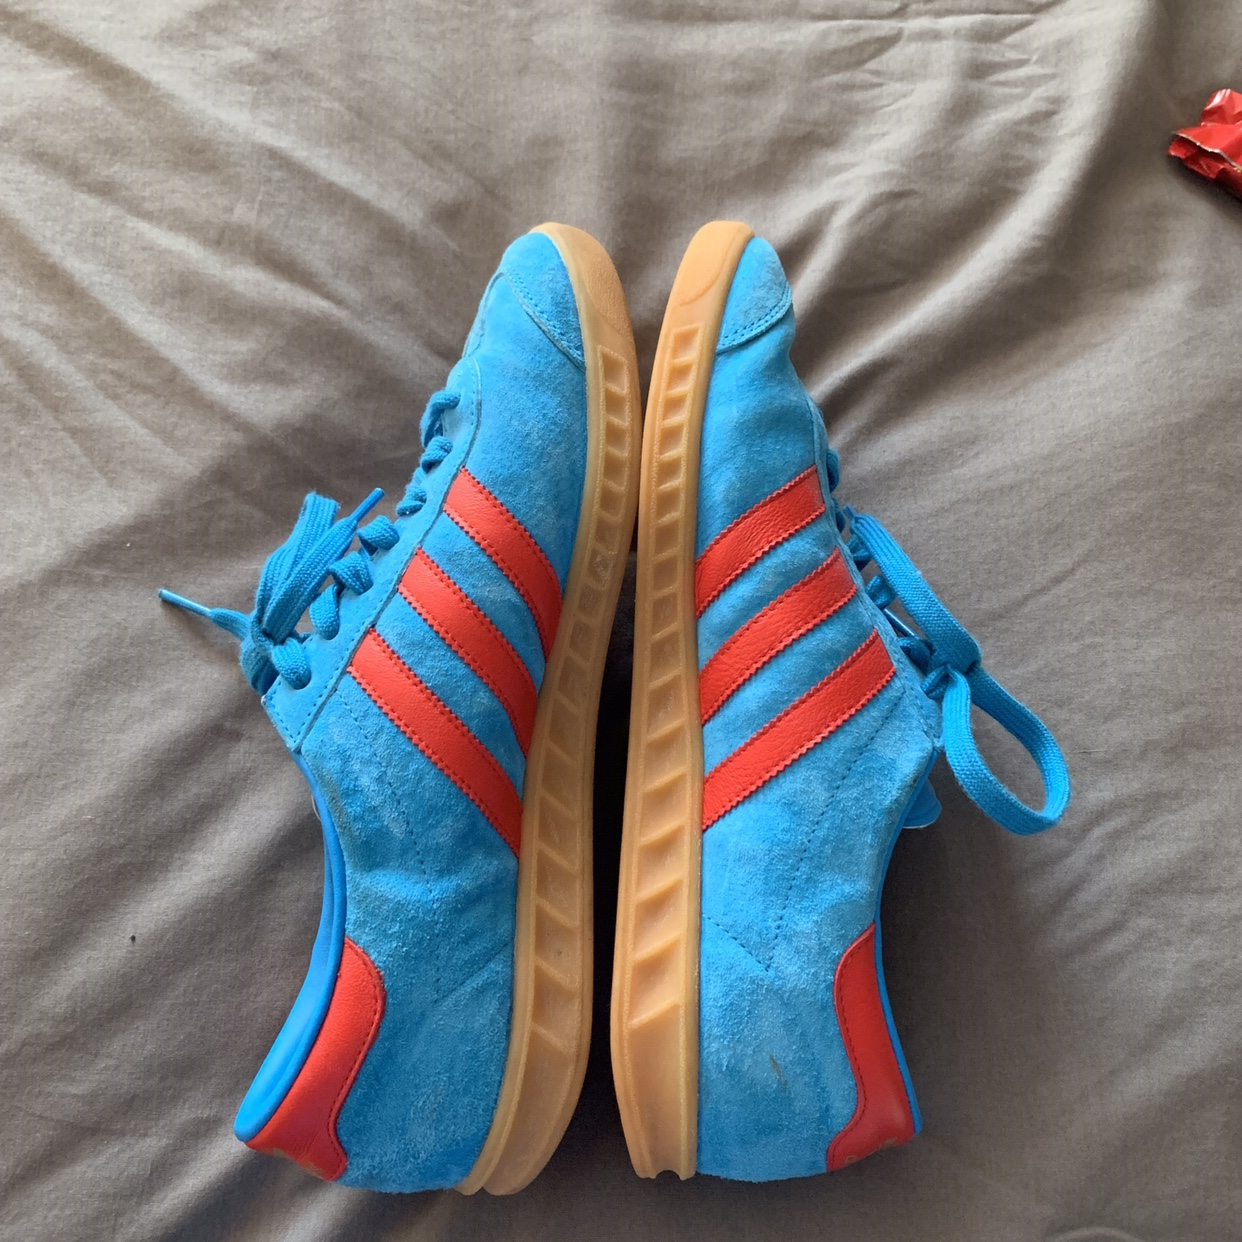 Monica Ejecutante compensar  Adidas Hamburg blue and red colour-way size 9. Wore... - Depop